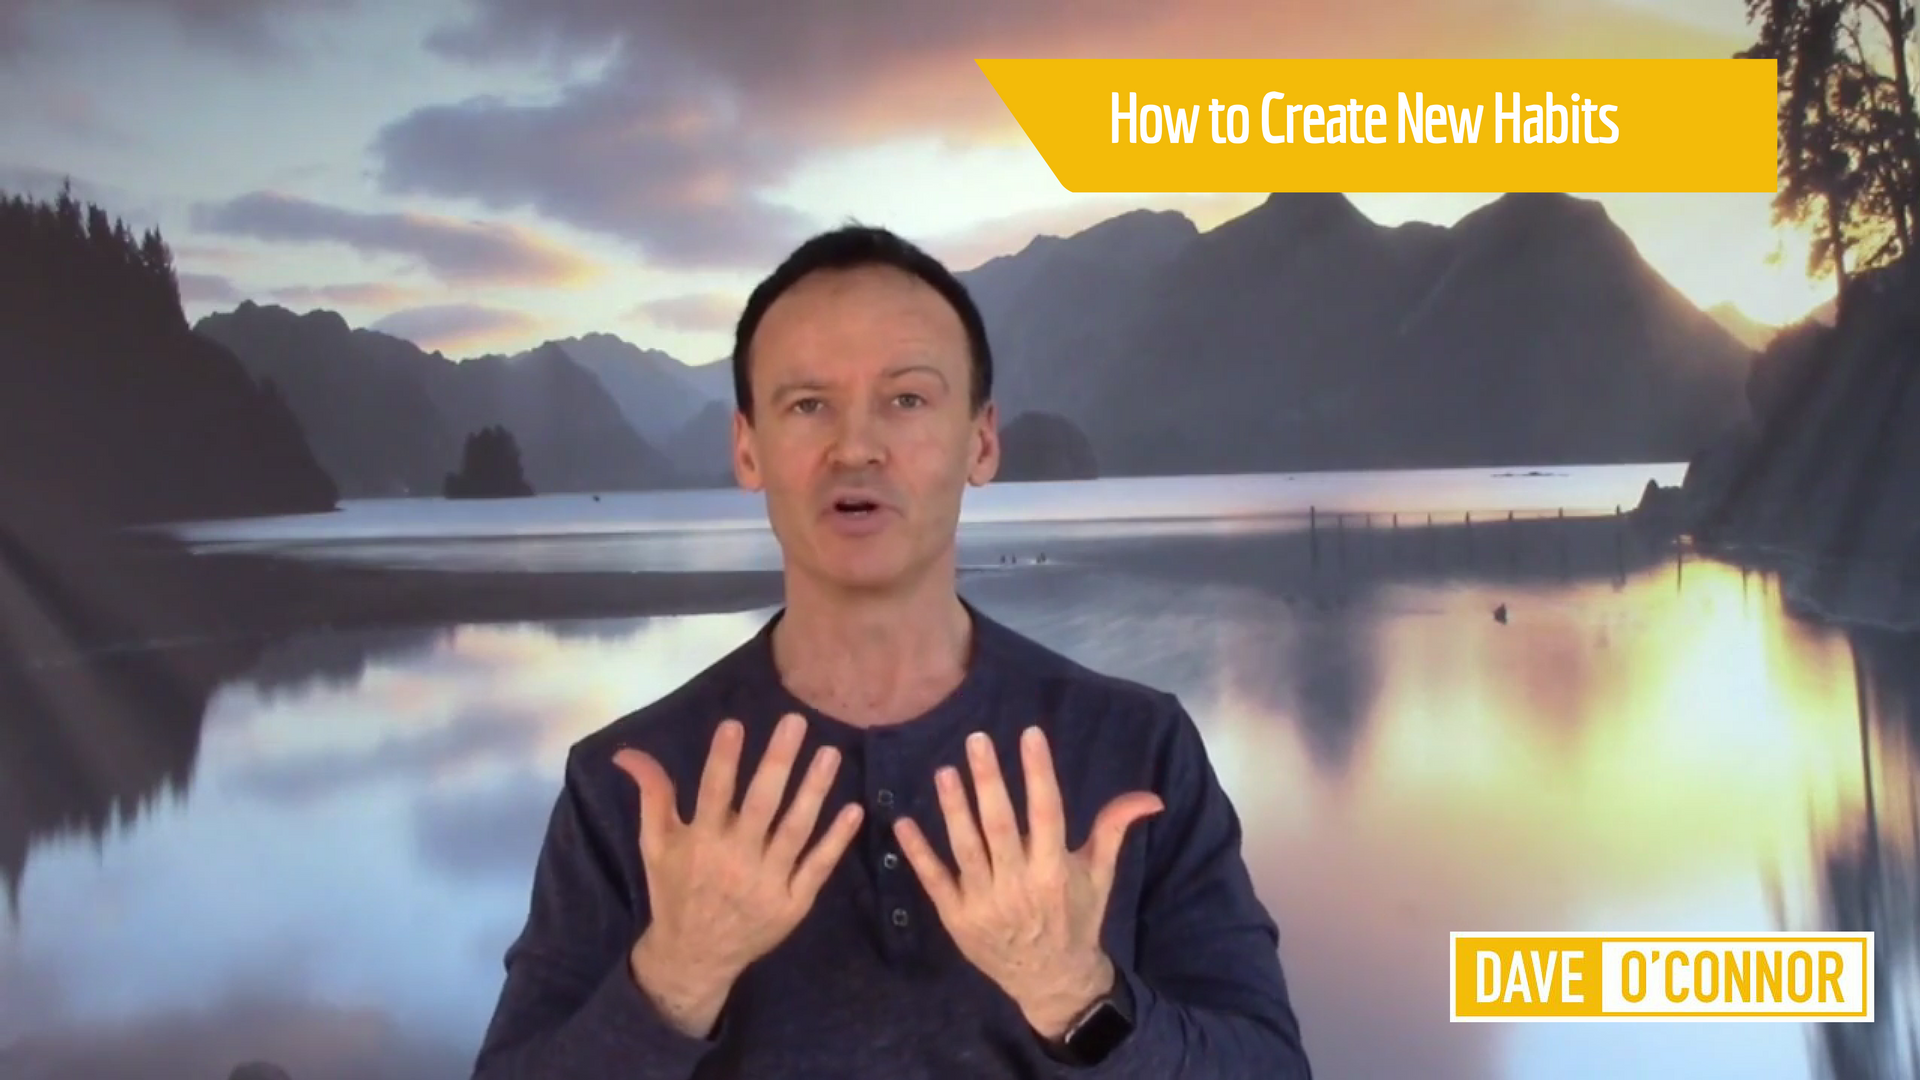 How to Create New Habits - Mindset Mastery - Dave O' Connor